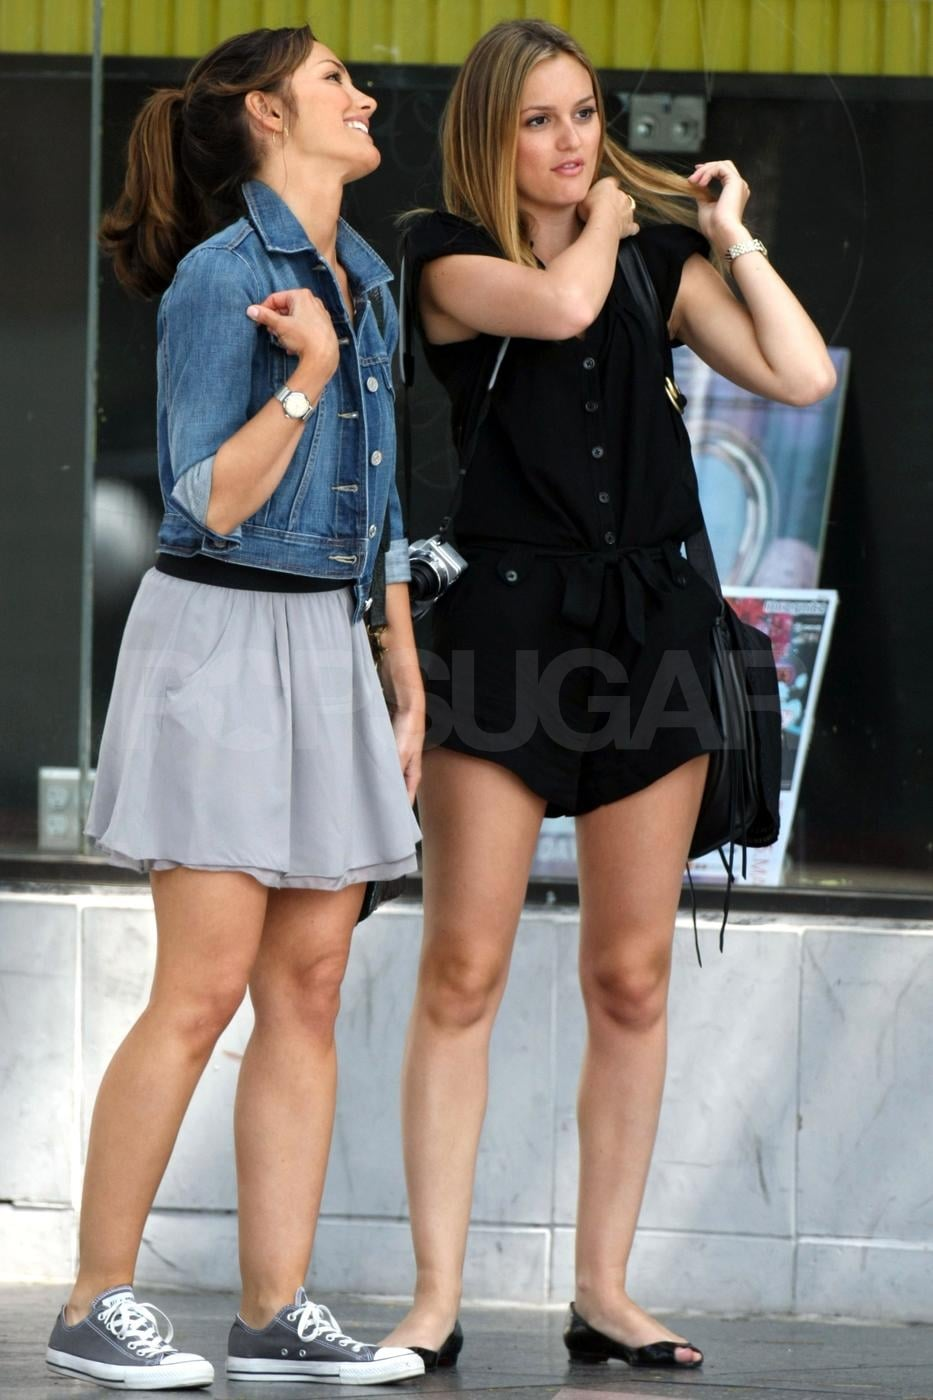 Photos of Leighton Meester and Minka Kelly Filming The ...